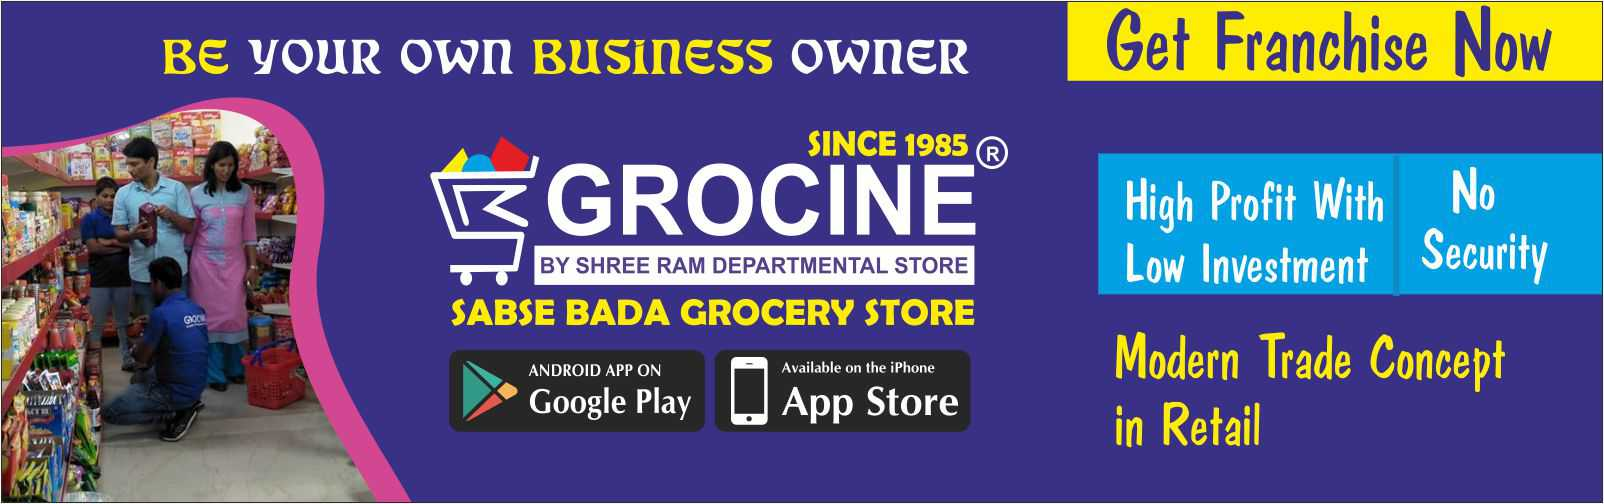 admin/photos/Grocine (A Well Known Departmental Store Brand)